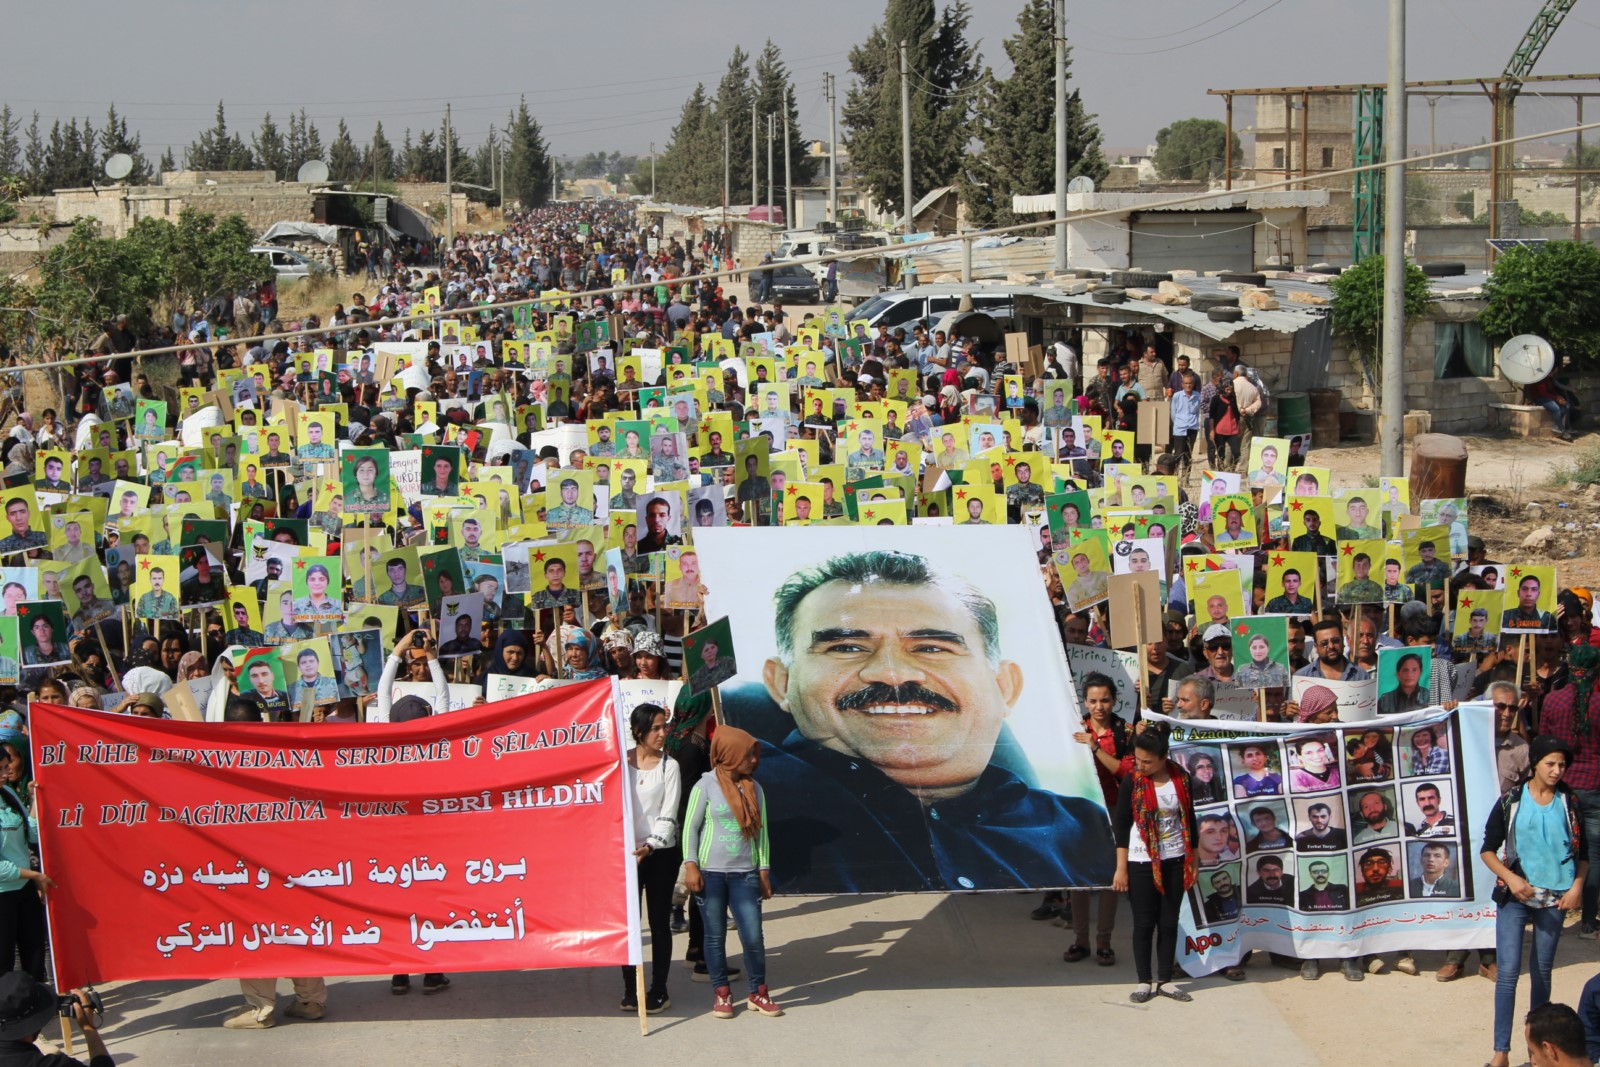 Afrin, al-Shahba people: in the spirit of Resistance of the Age, Şiladizê… revolt in face of Turkish occupation